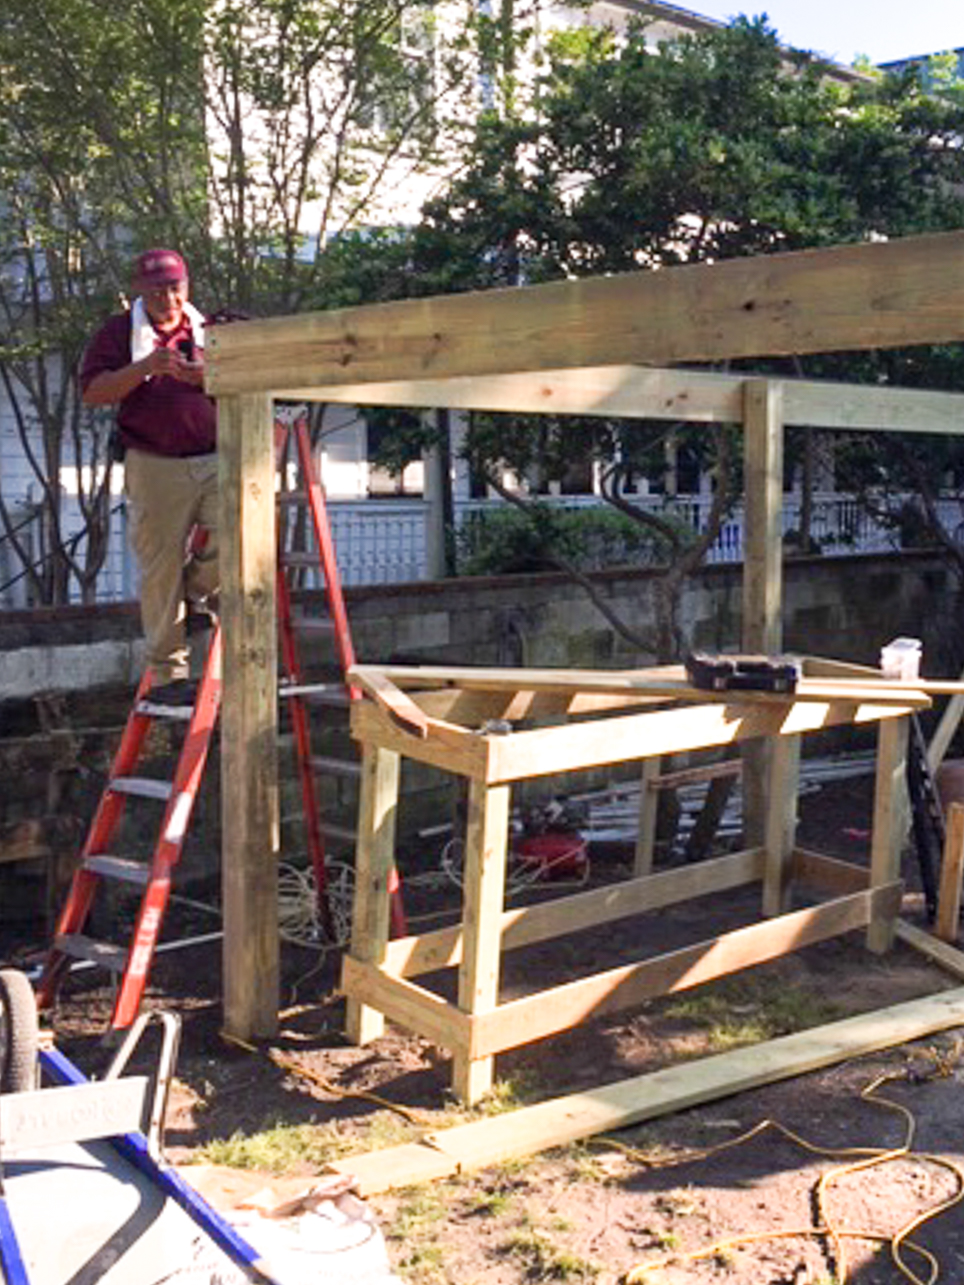 CofC Carpentry shop employees Bill Buckley, Keith Prioleau, Erik Broglund, Sam Holmes Stanley work on a plant shelter for the grounds department at 45 Coming Street during the 2020 COVID-19 Pandemic.